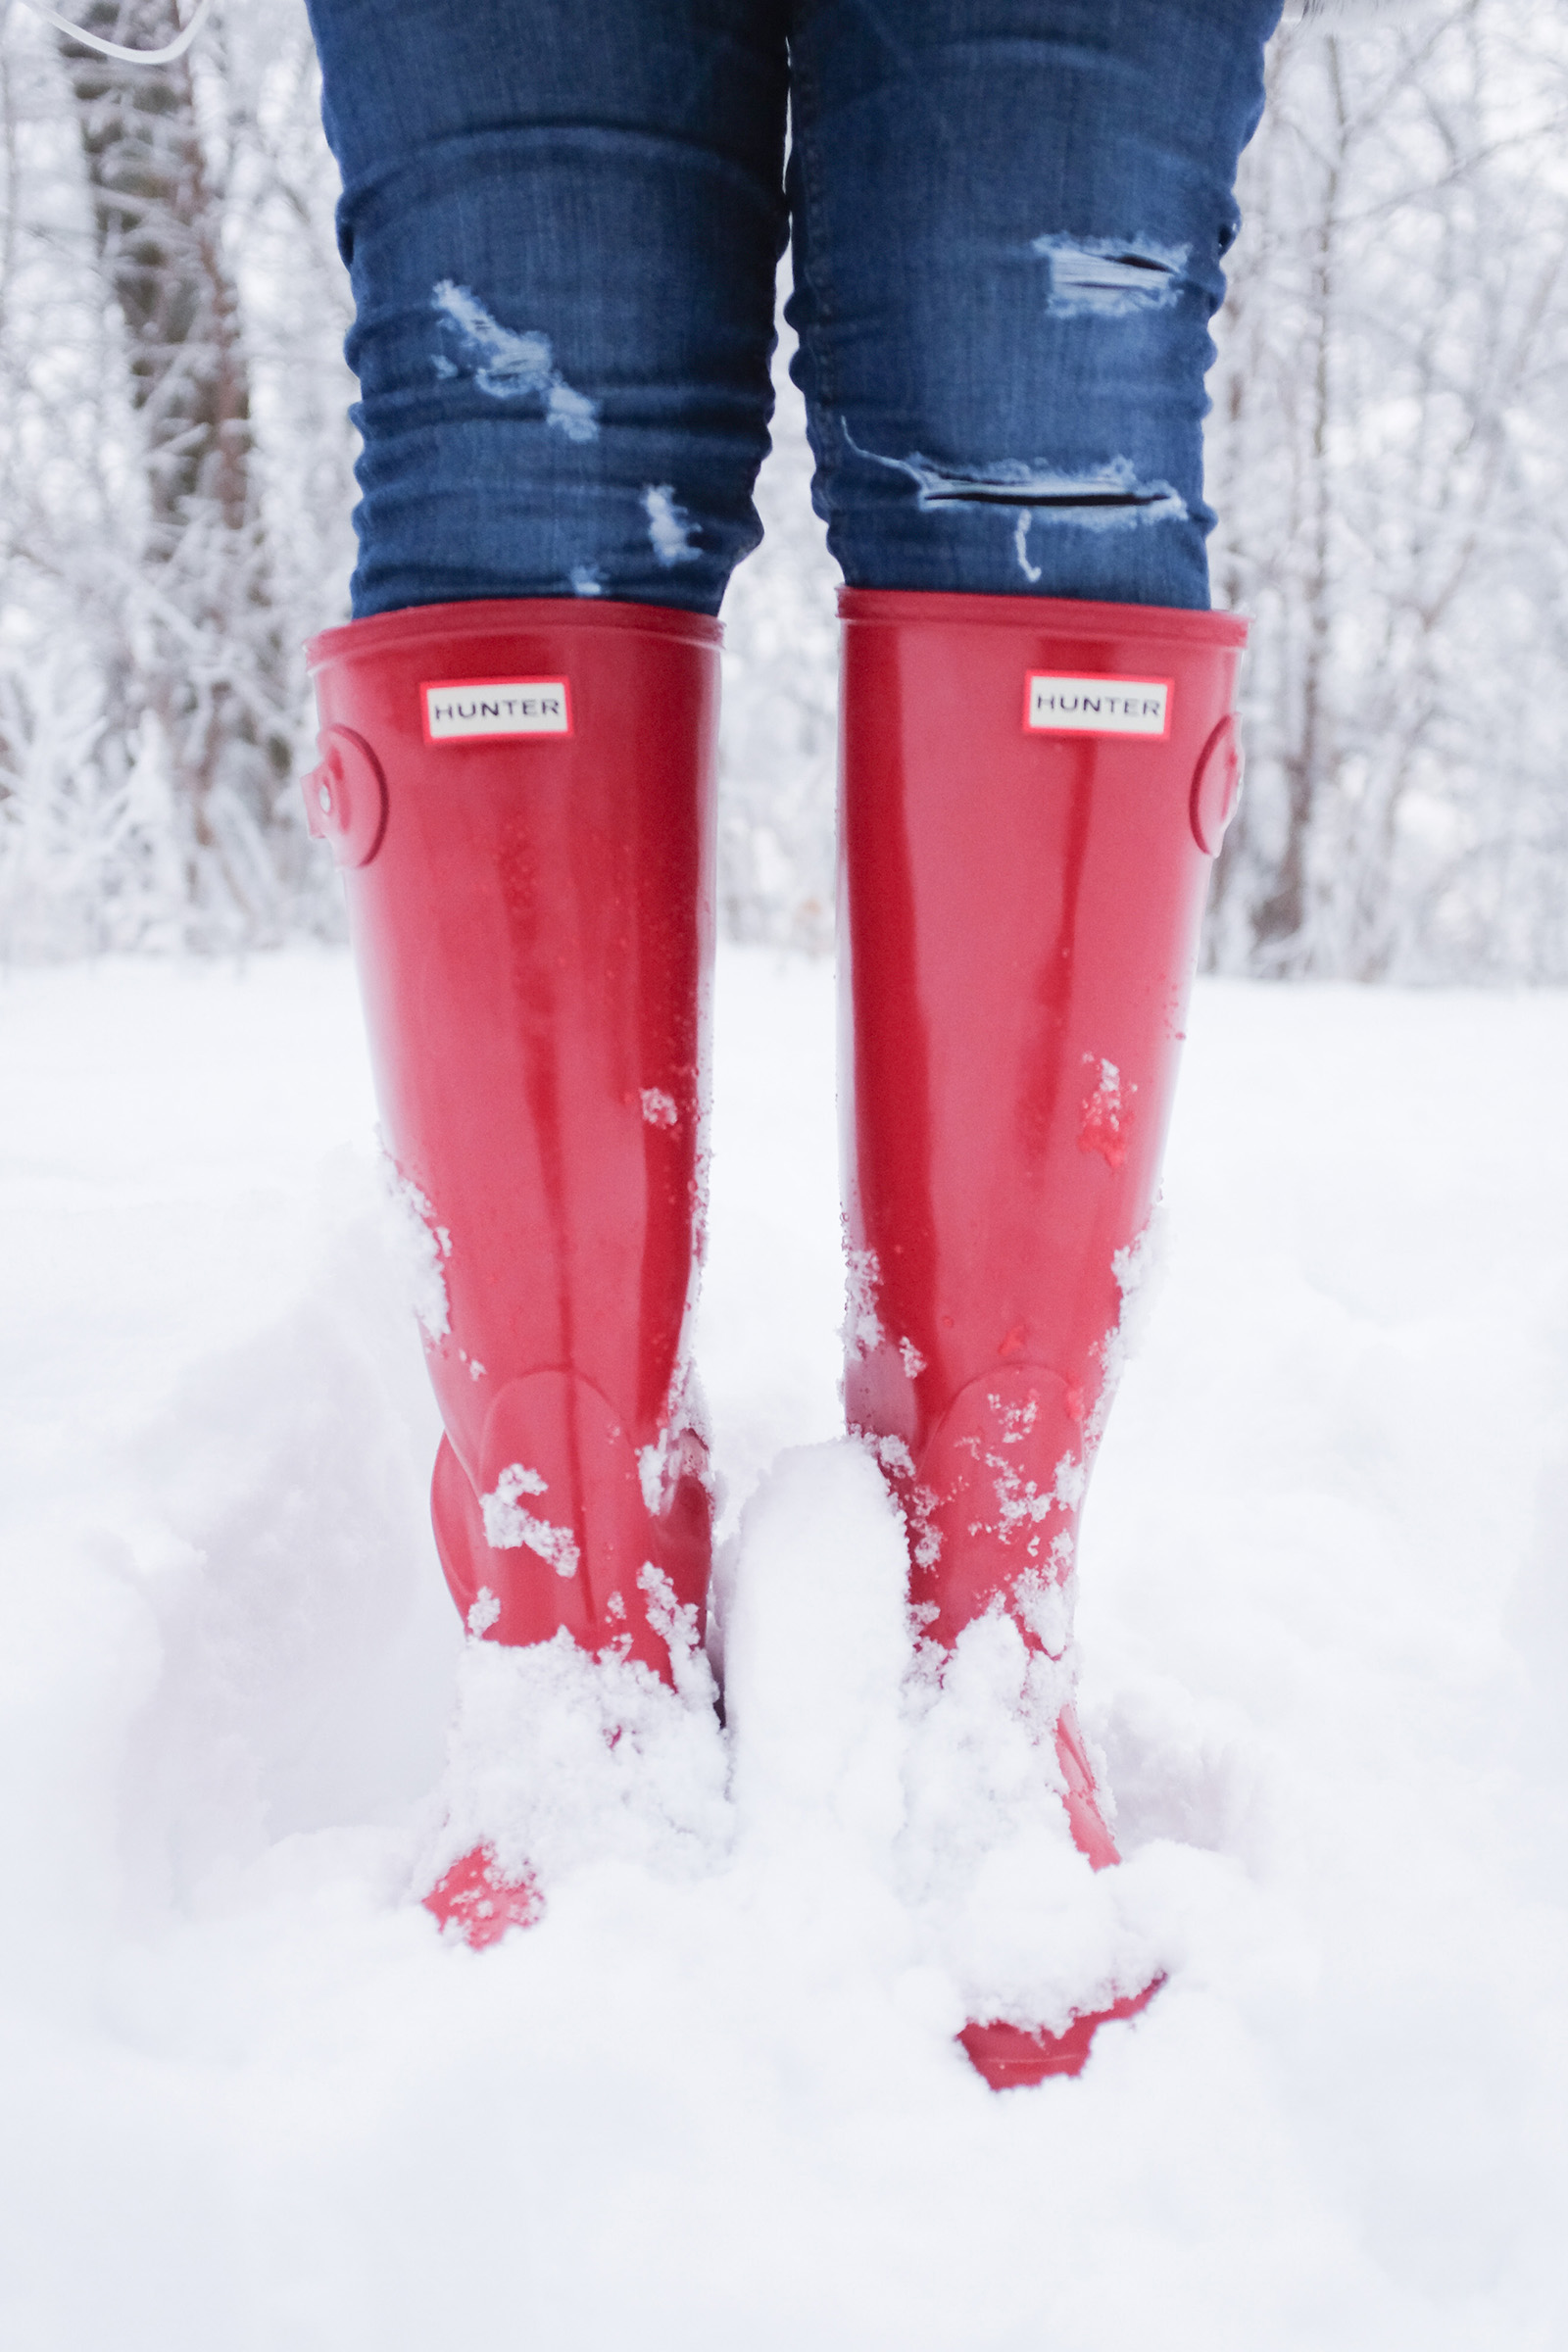 red hunter boots in snow